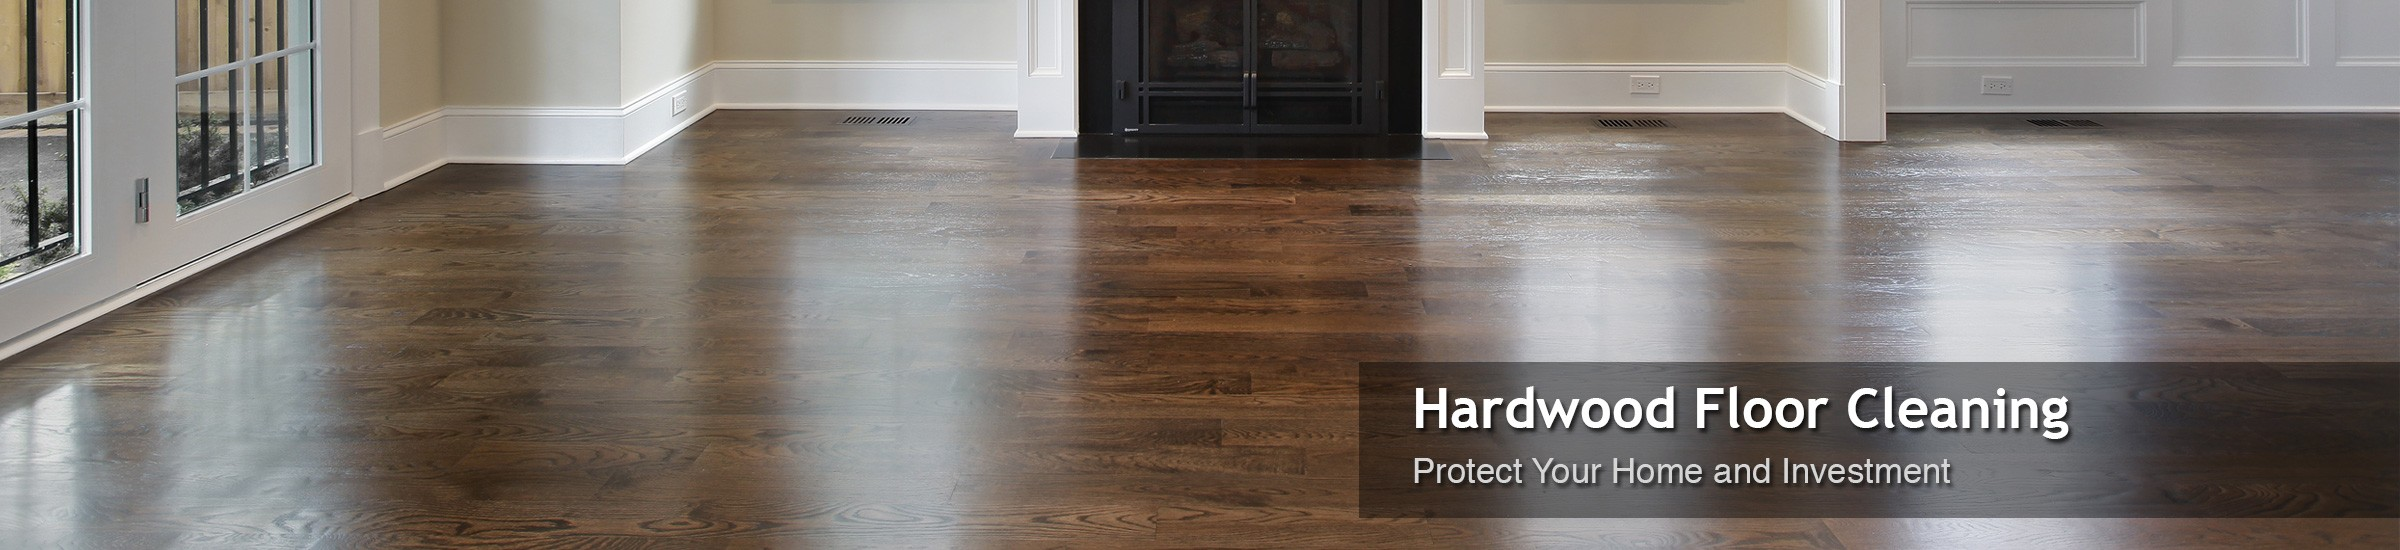 hardwood—protect-your-home-and-investment